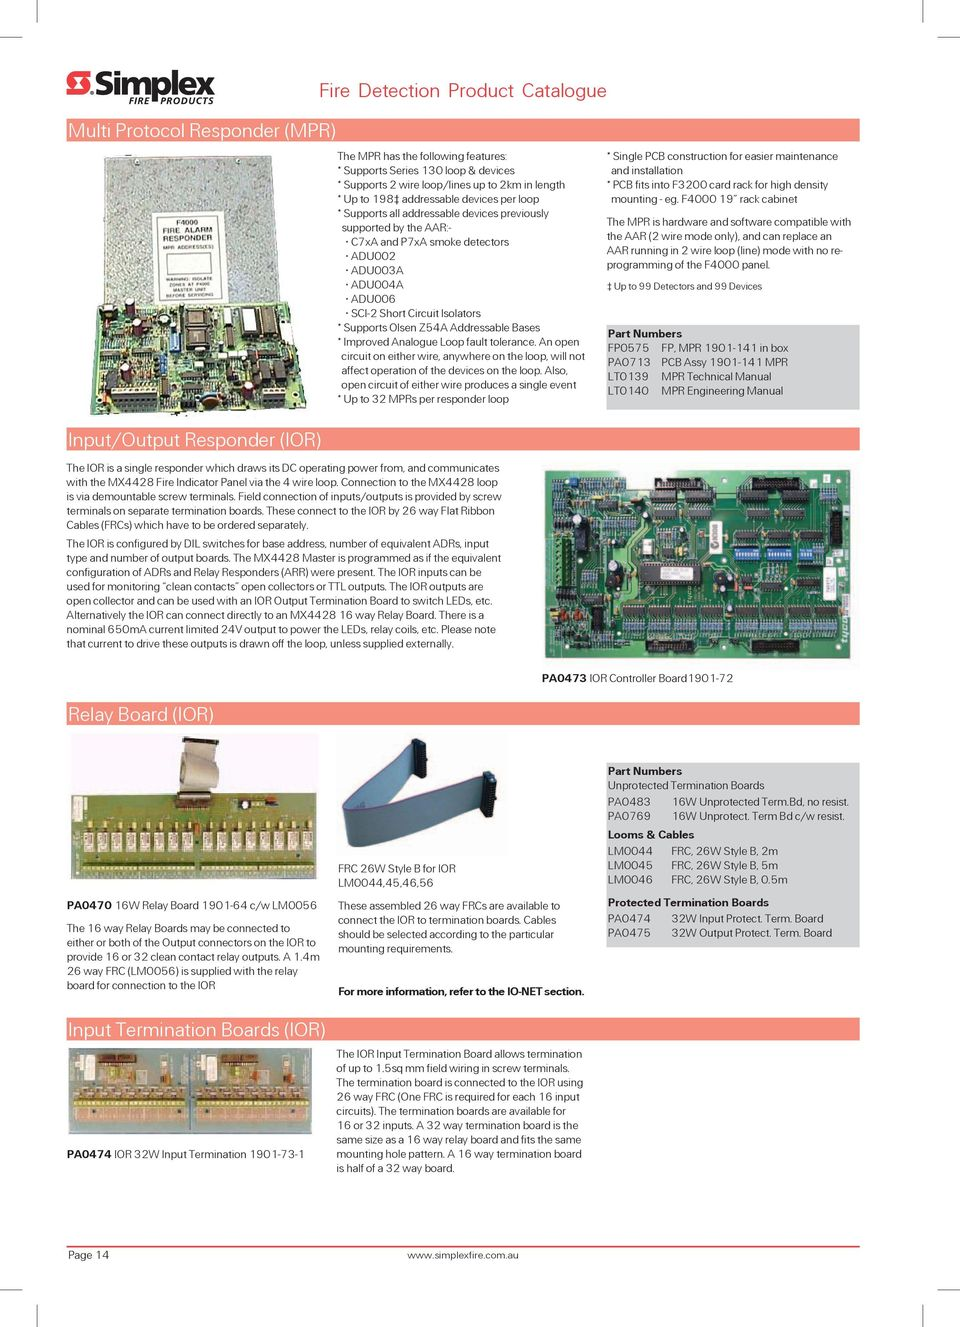 Fire Detection - Australia  Product Catalogue Issue 2 - PDF